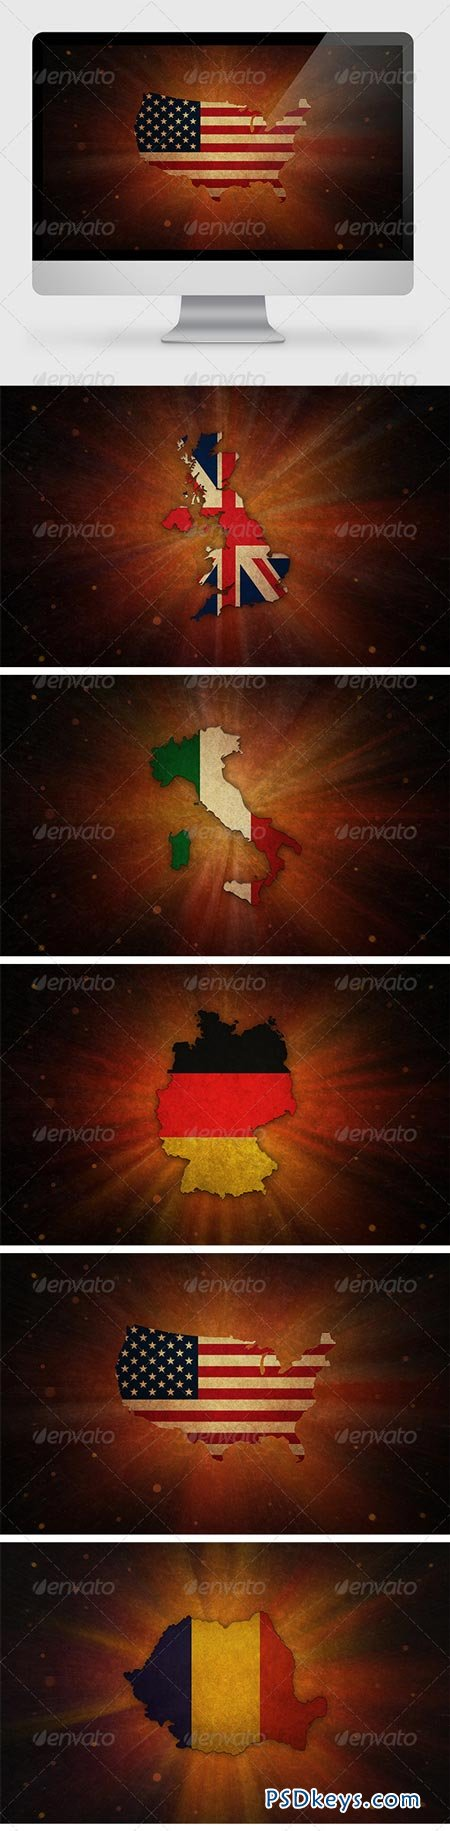 5 Countries Backgrounds 7093719